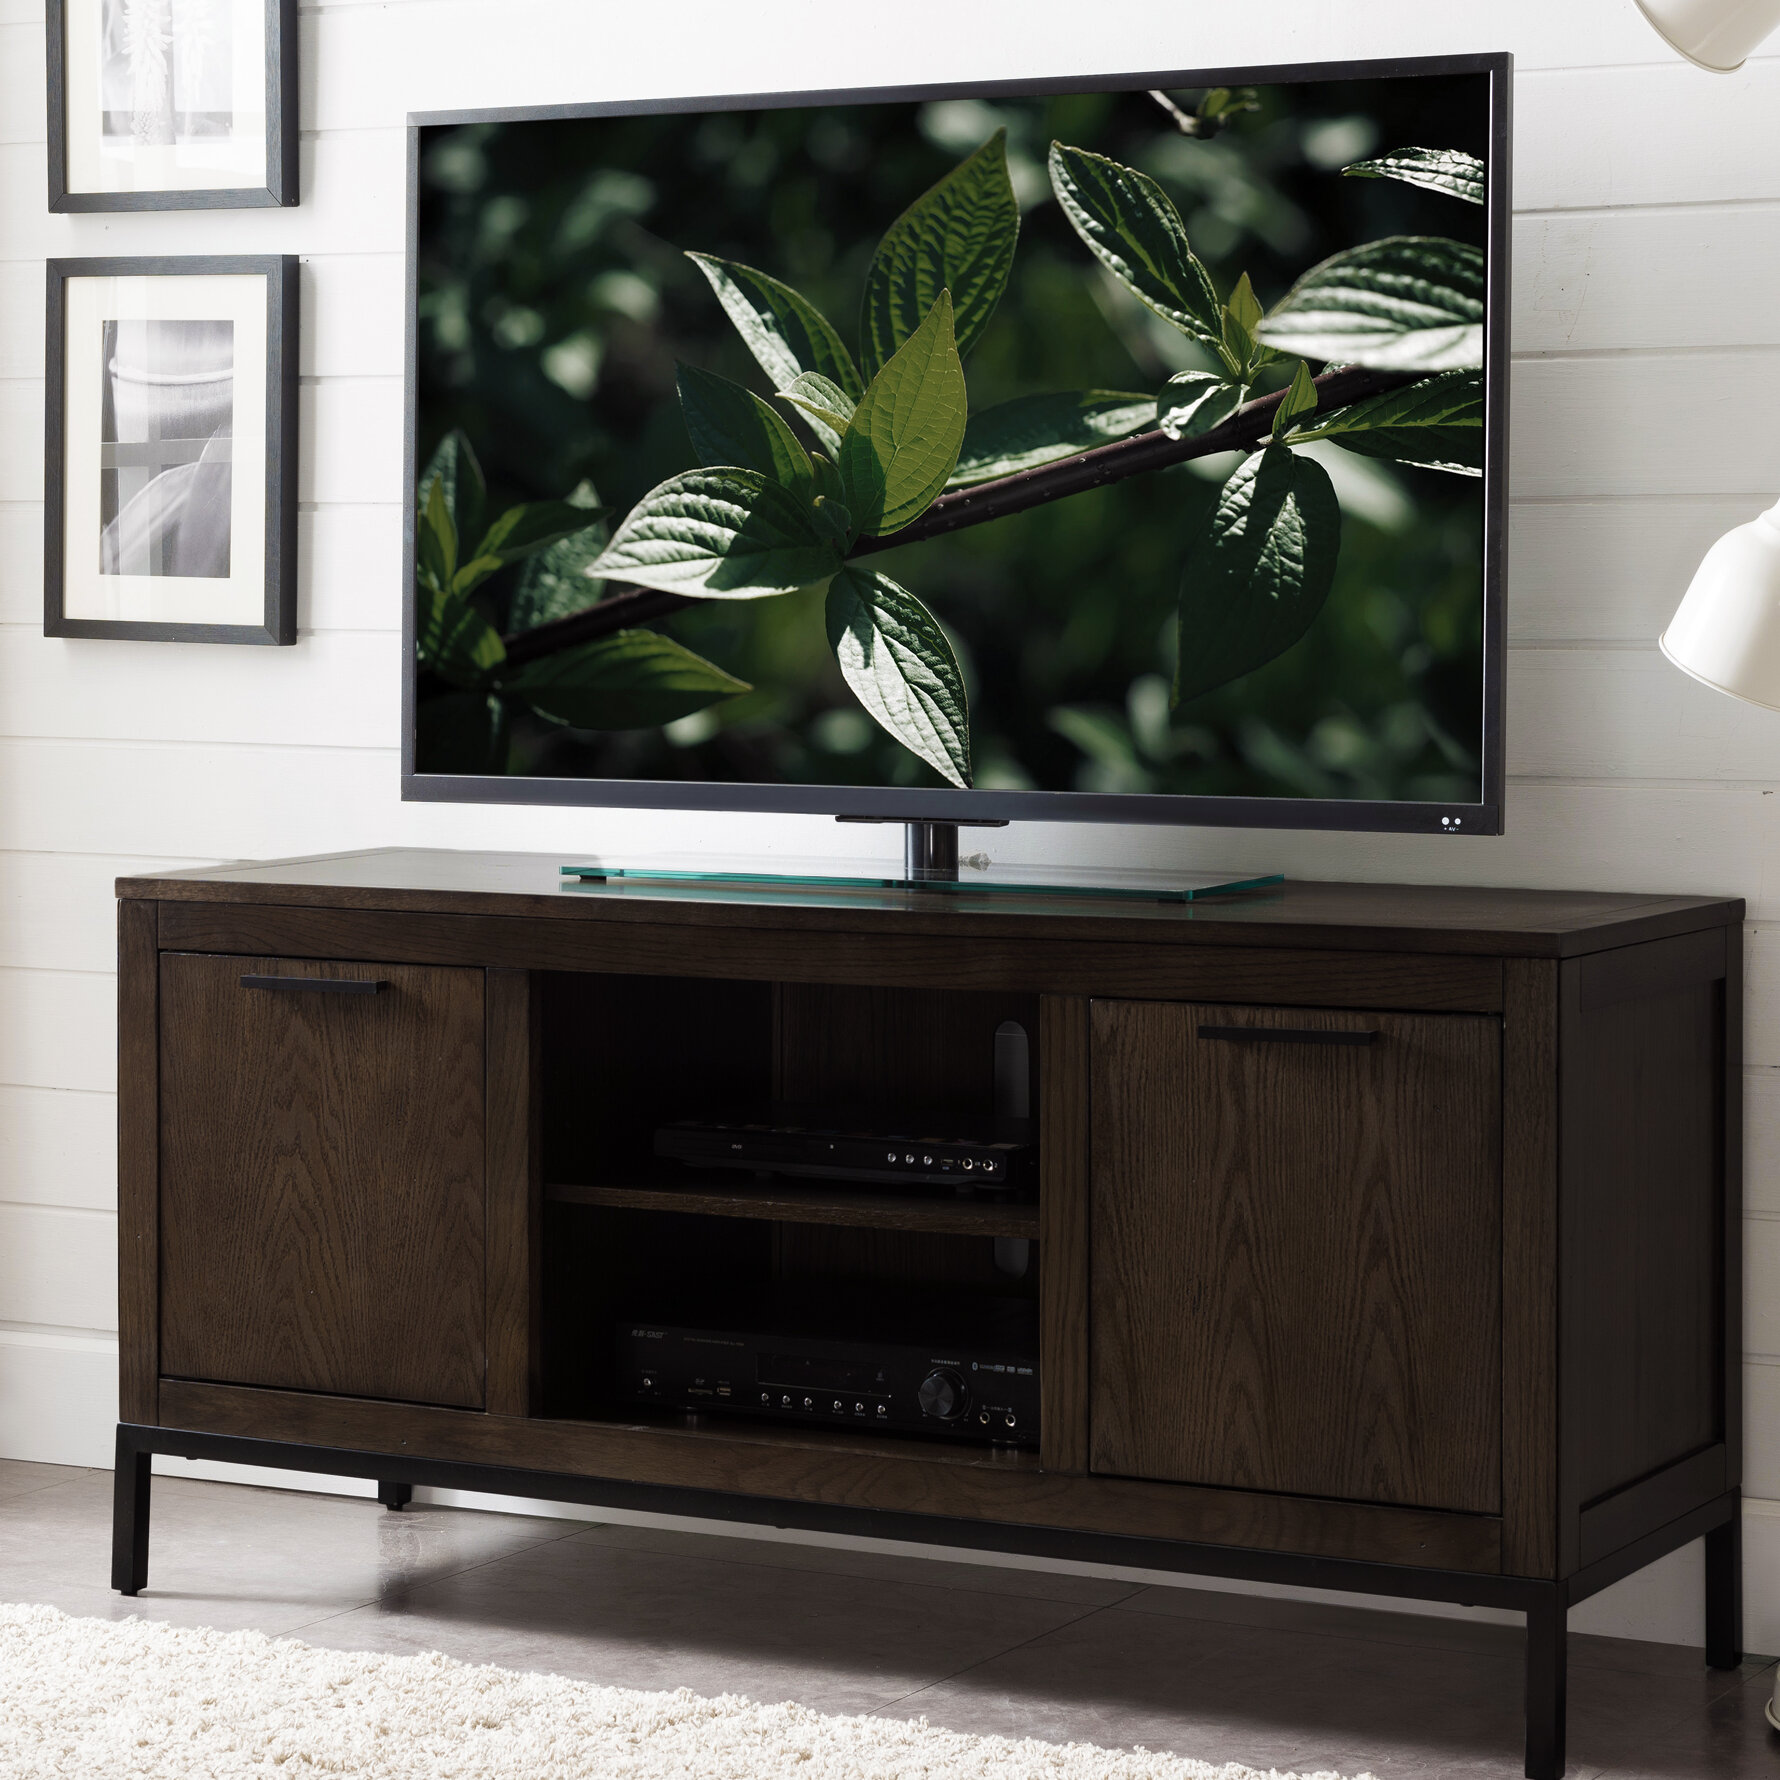 Wrought Studio Laub Vintage Tv Stand For Tvs Up To 55 Reviews